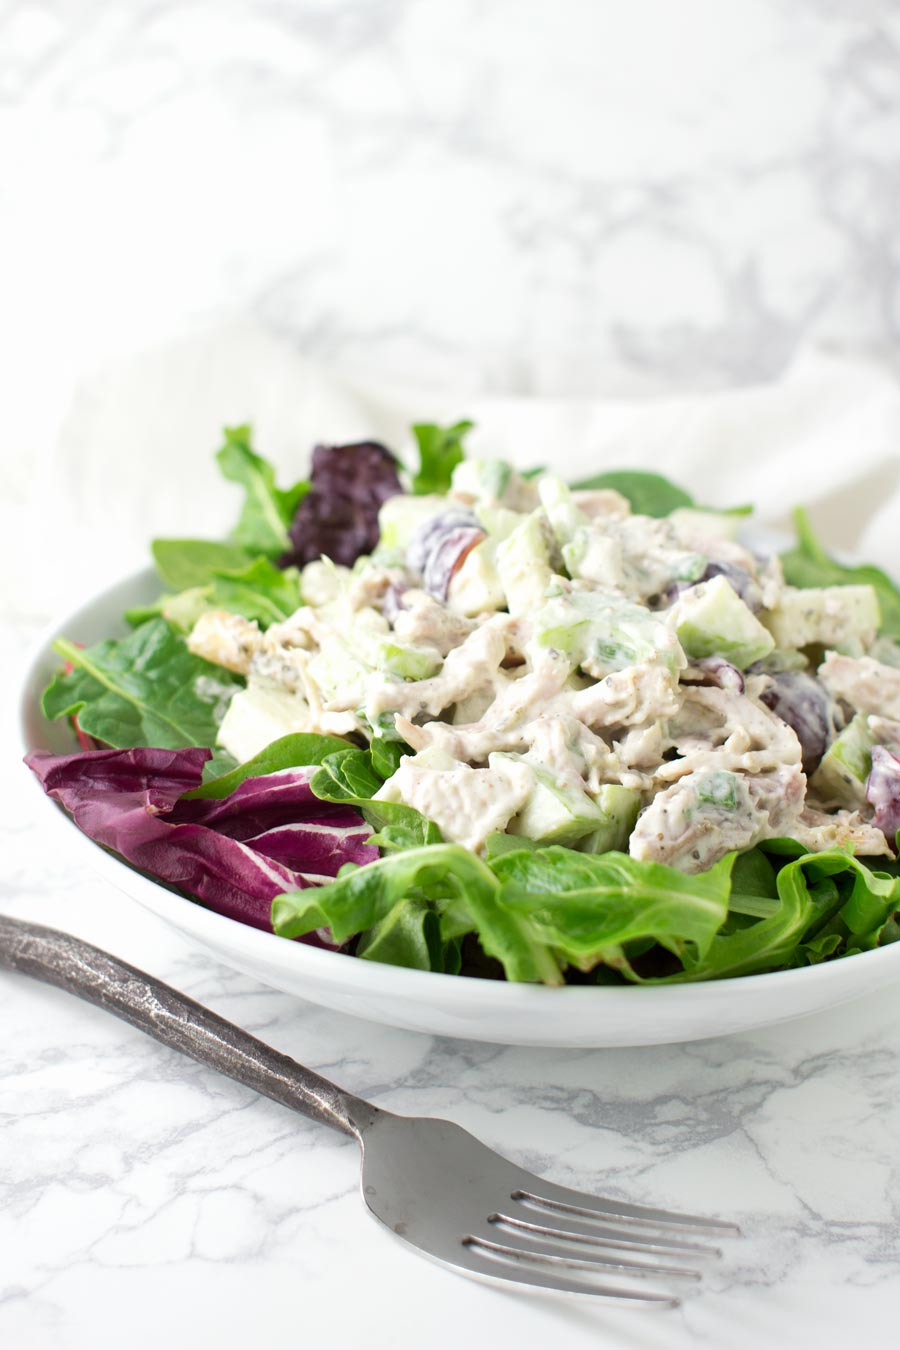 Chicken Waldorf Salad recipe from acleanplate.com #aip #paleo #glutenfree